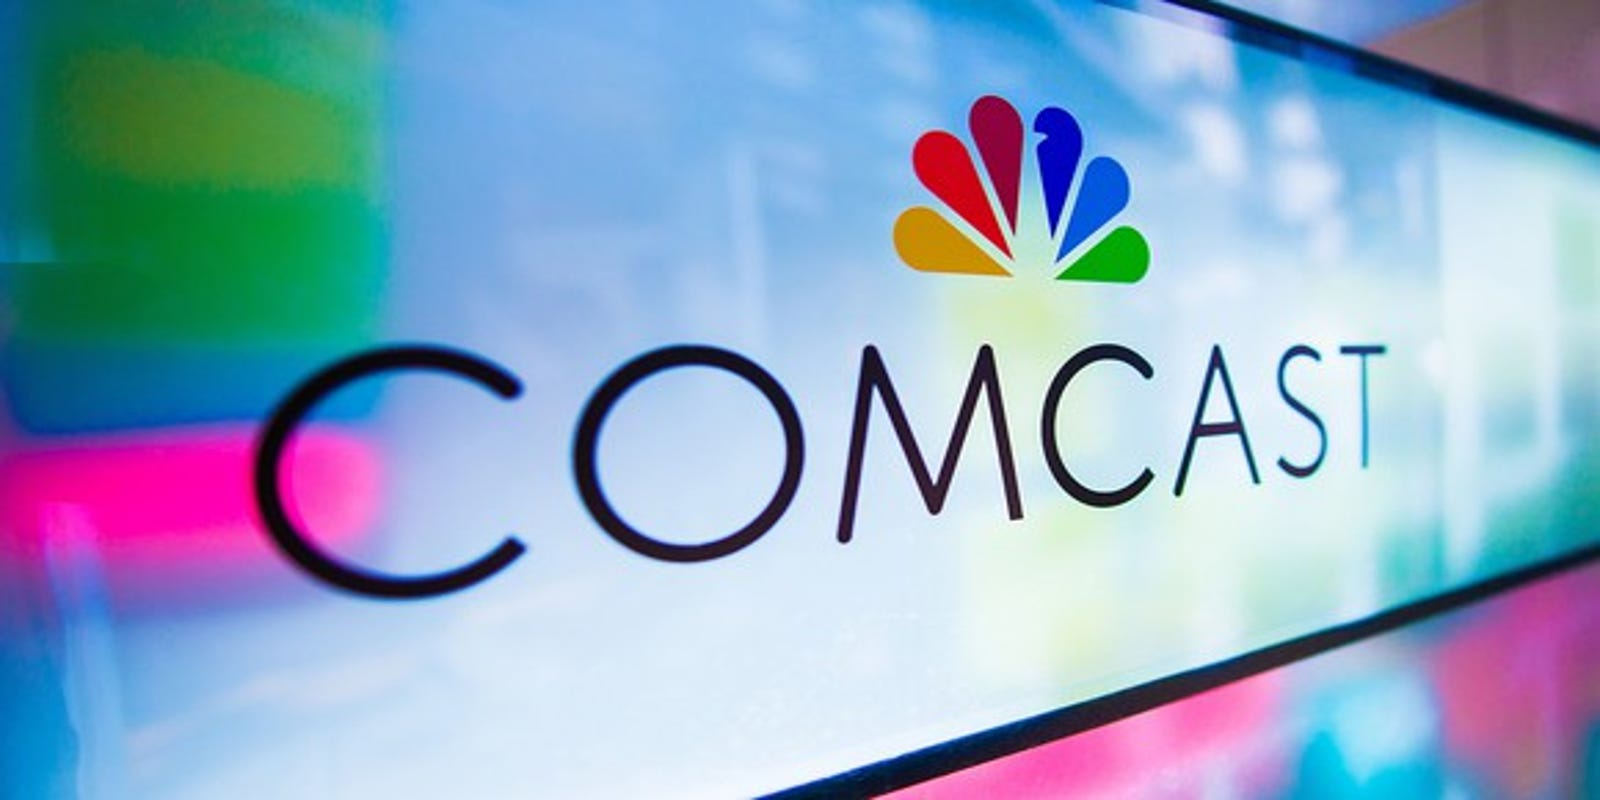 Comcast recovers from outage of TV, broadband services across U S